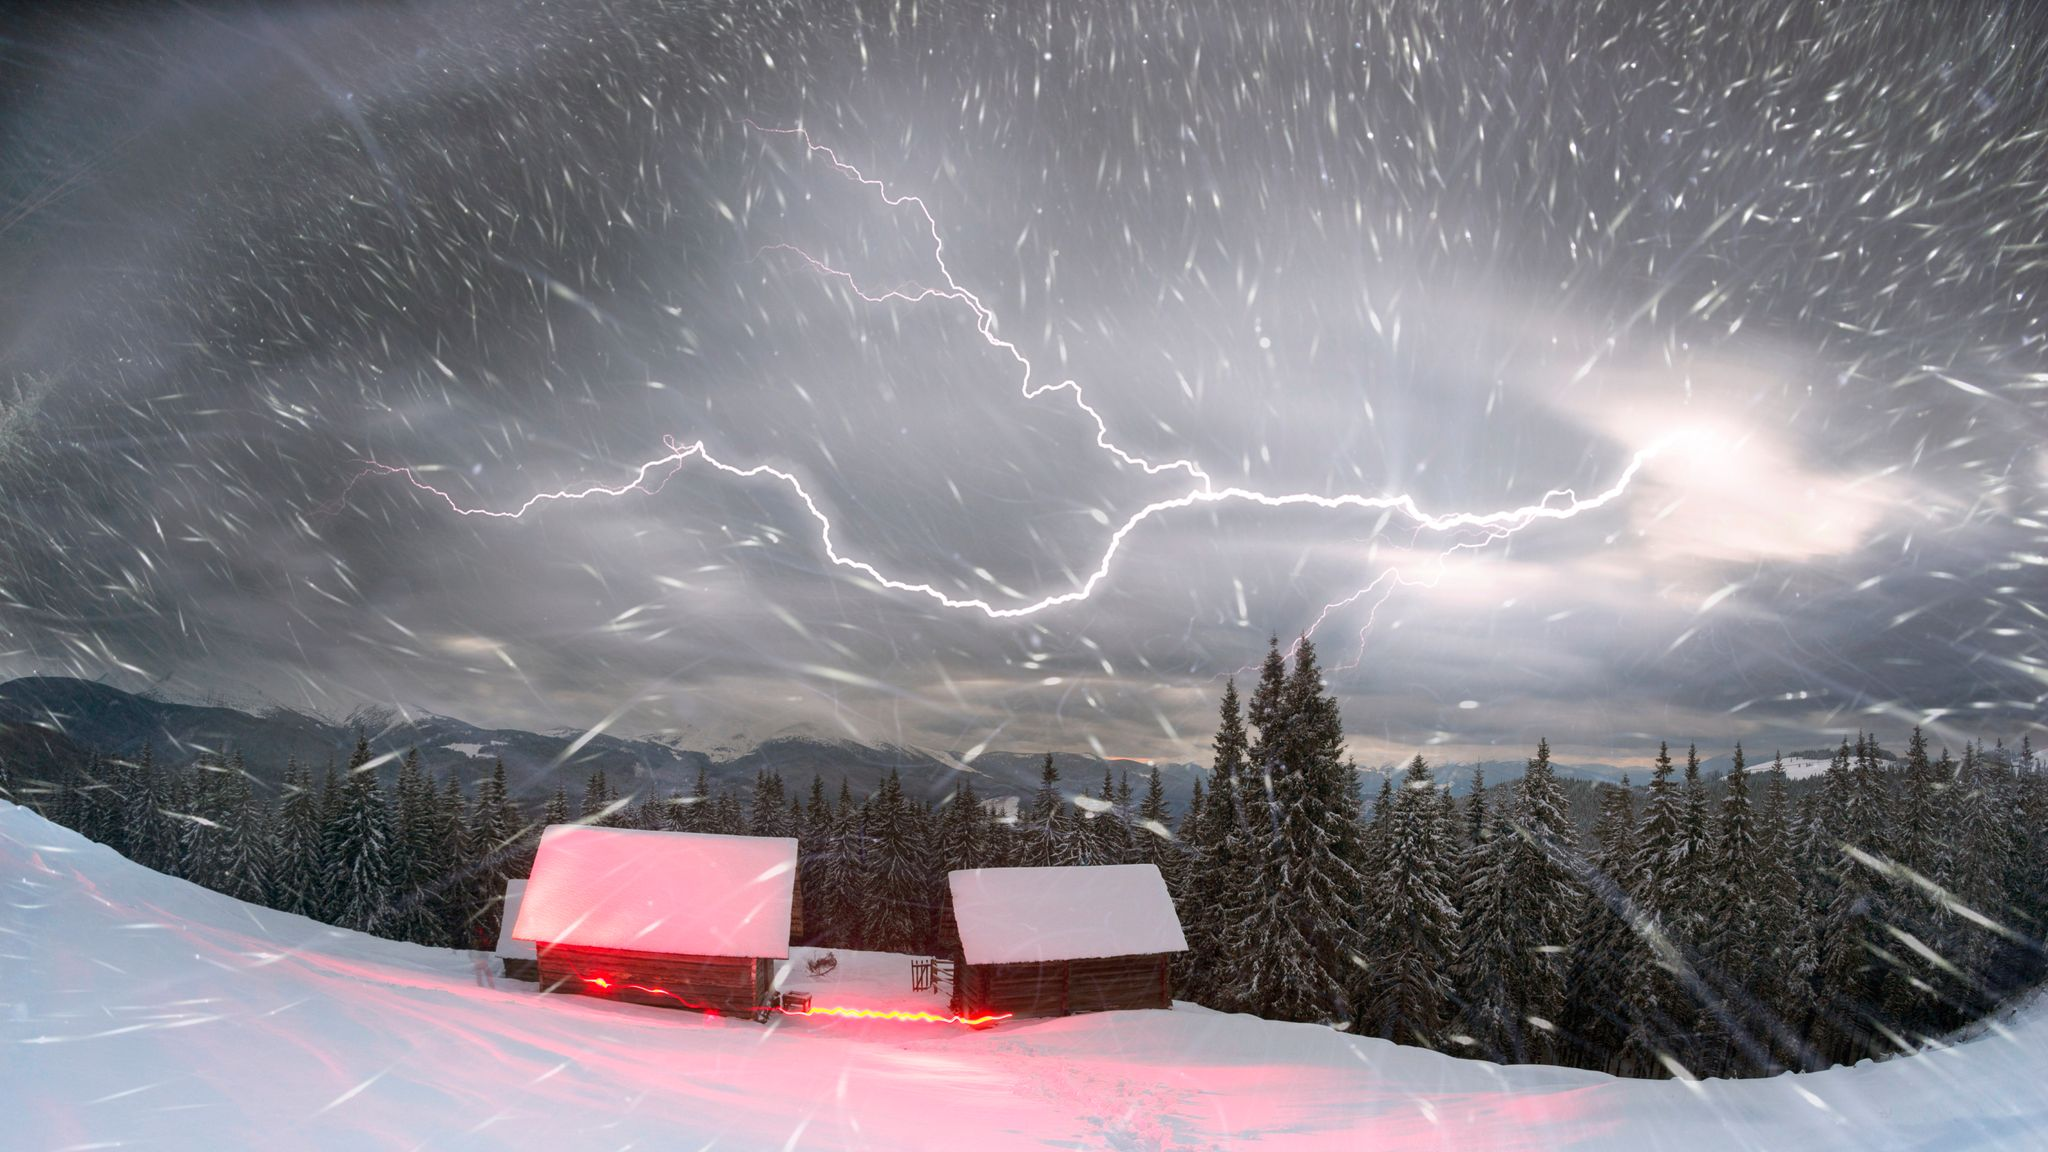 UK weather forecast: Met Office warns of thundersnow as temperatures